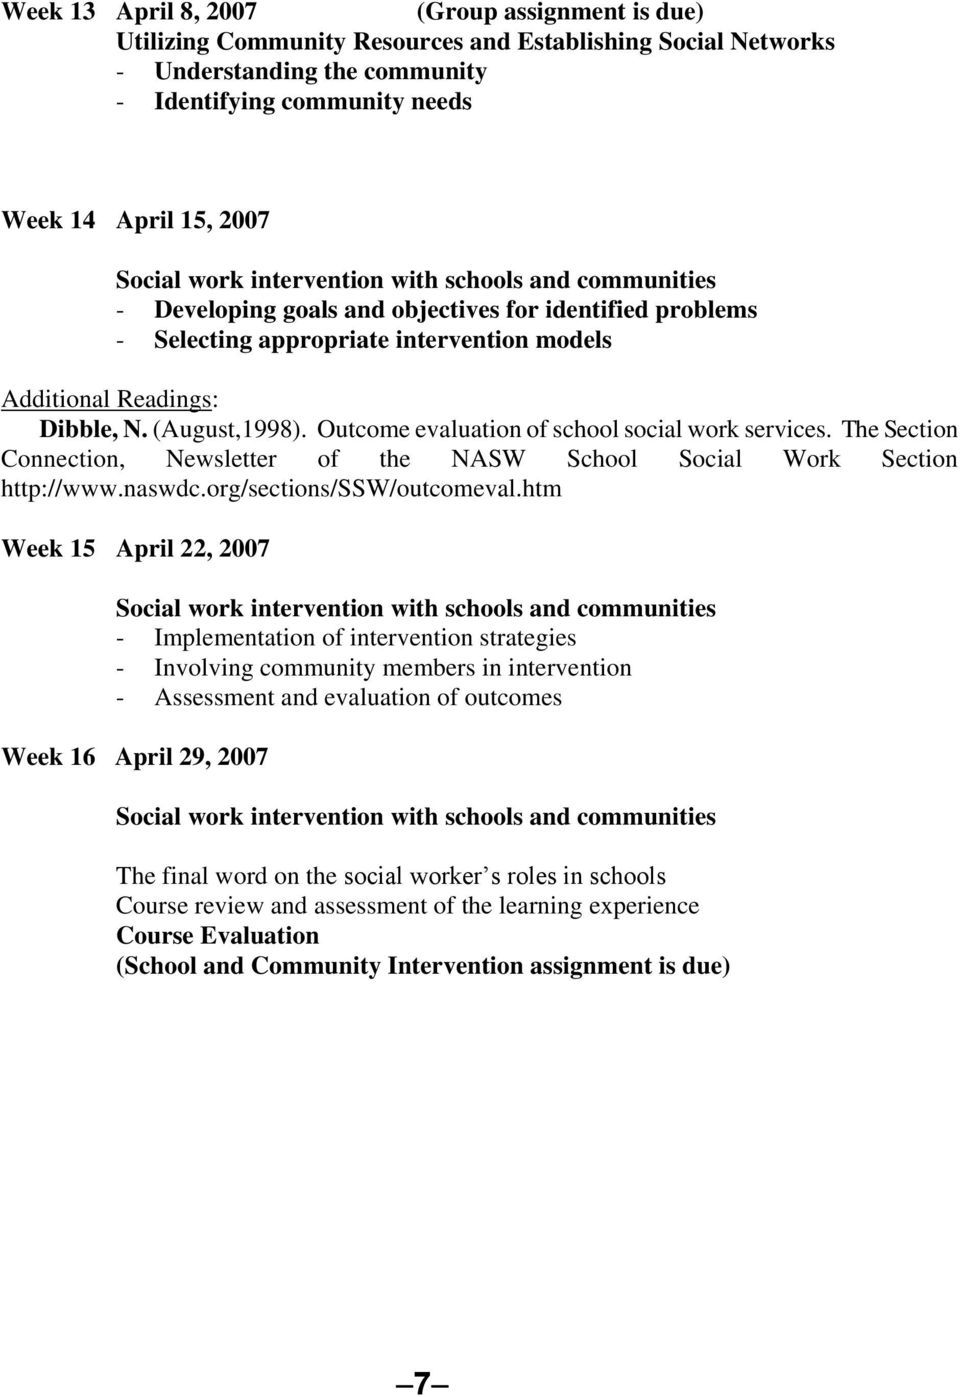 Outcome evaluation of school social work services. The Section Connection, Newsletter of the NASW School Social Work Section http://www.naswdc.org/sections/ssw/outcomeval.